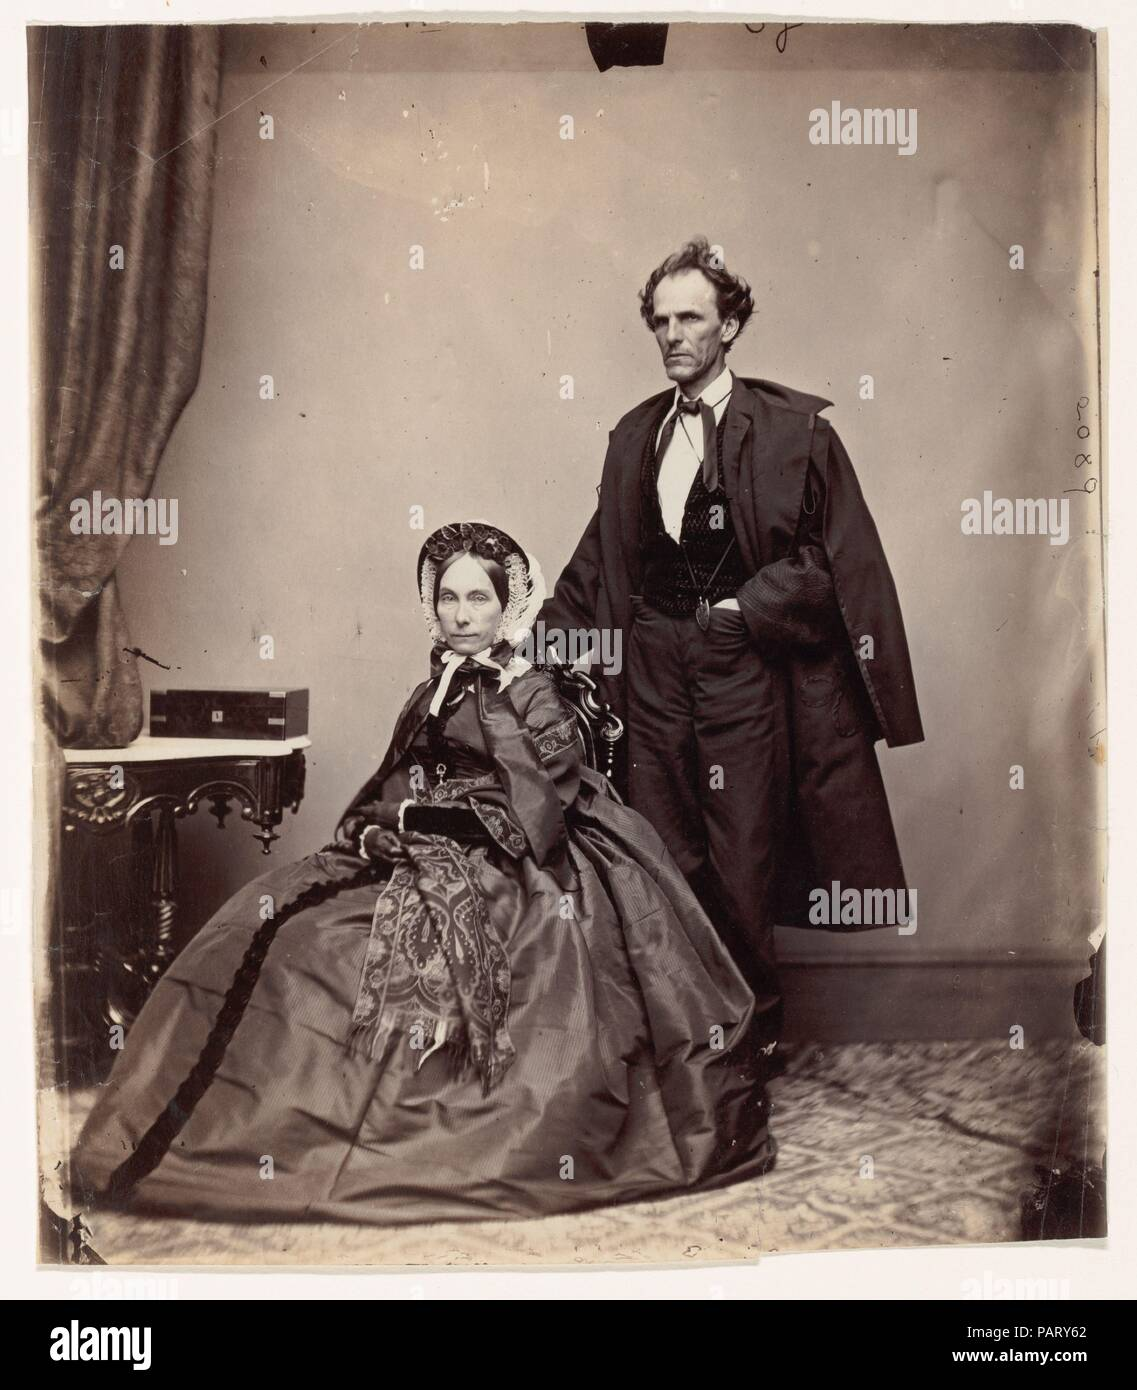 [Senator and Mrs. James Henry Lane]. Dimensions: 22.8 × 19.7 cm (9 × 7 3/4 in.). Photography Studio: Brady & Co. (American, active 1840s-1880s). Date: 1861-66.  Senator James H. Lane of Kansas (1814-1866) was most often seen in a woolen shirt, bearskin overcoat, and straw hat. The fiercest leader of the Free State movement in the 1850s, he brought various antislavery forces together to form a unified party and led military campaigns against pro-slavery towns with such effectiveness and brutality that he earned the sobriquet, the 'Grim Chieftain of Kansas.' Elected as one of the first two senat - Stock Image